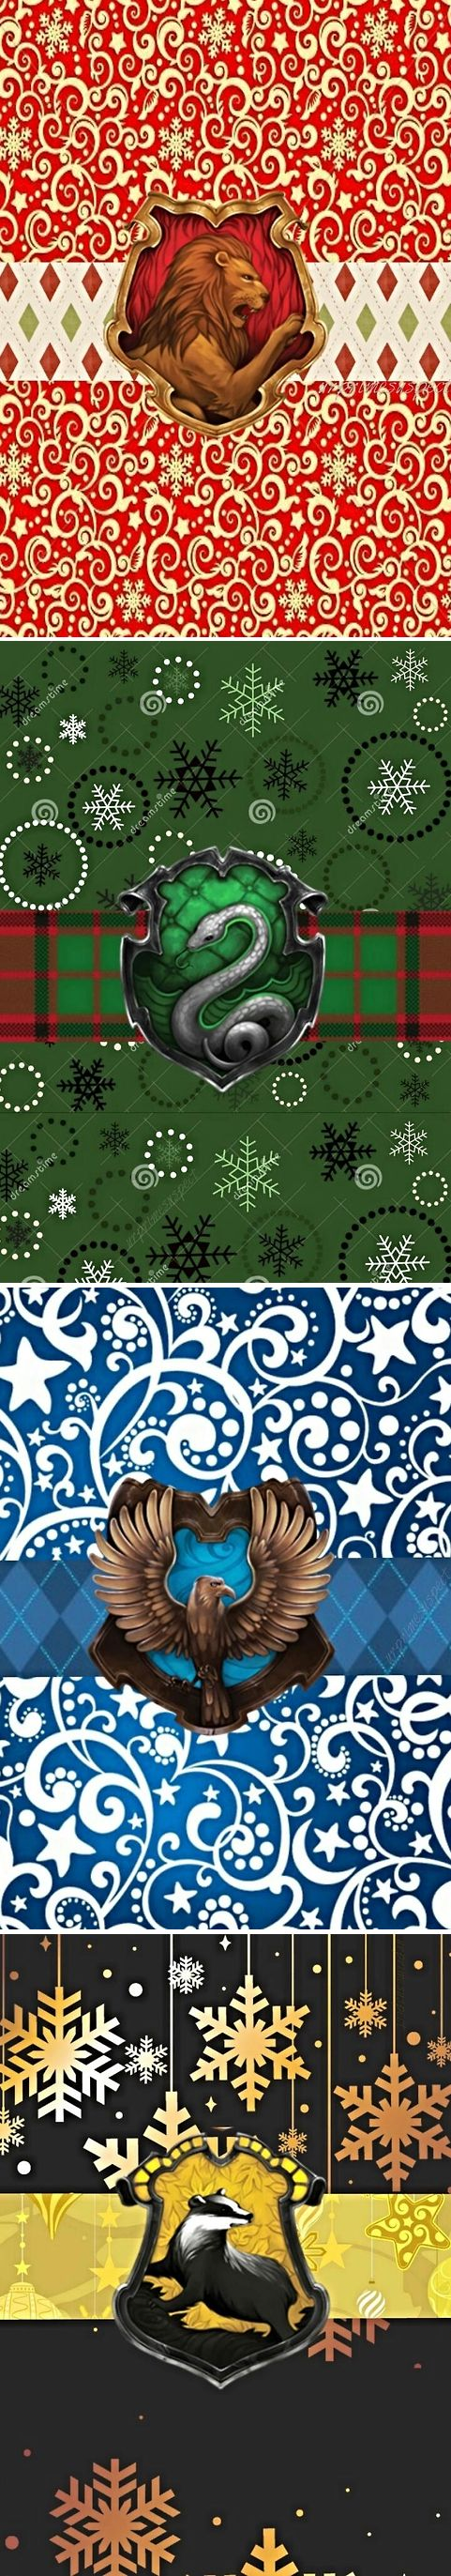 Hogwarts houses + Christmas. Most amazing gift wrap ever. I don't think I would even open the box if I got it wrapped in one of these.